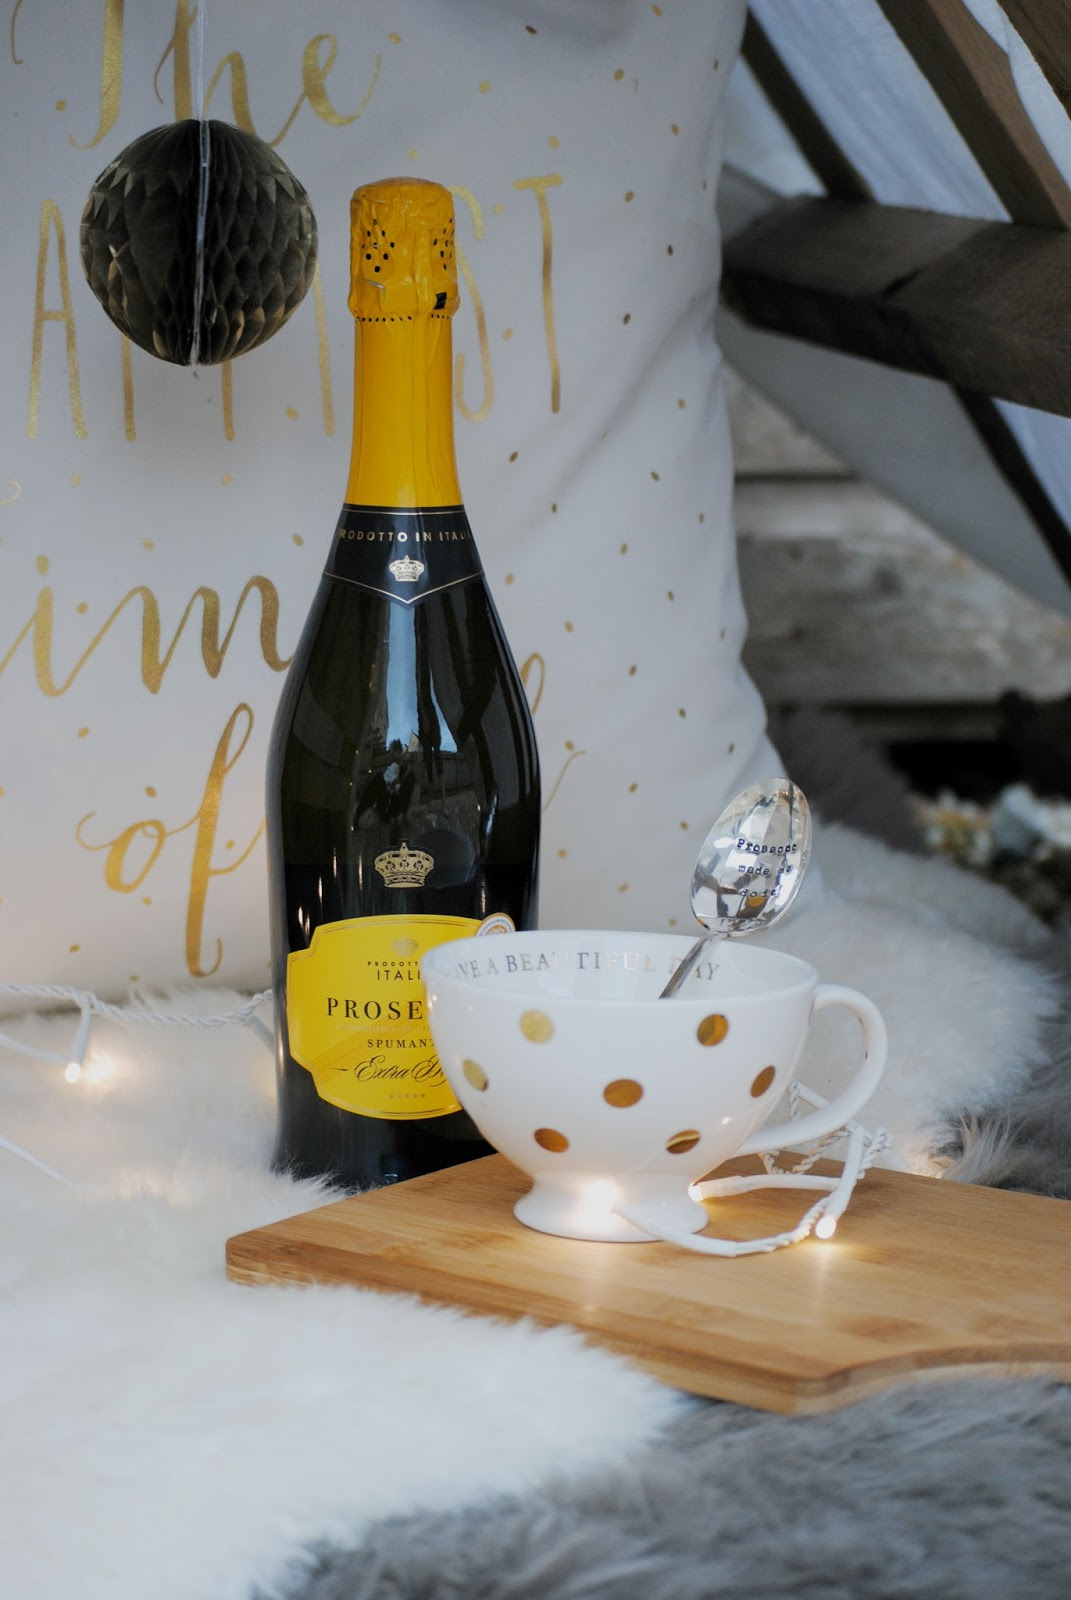 personalised gift ijustloveit.co.uk photography shoot location picnic fairy lights lifestyle wicker basket flame candle prosecco